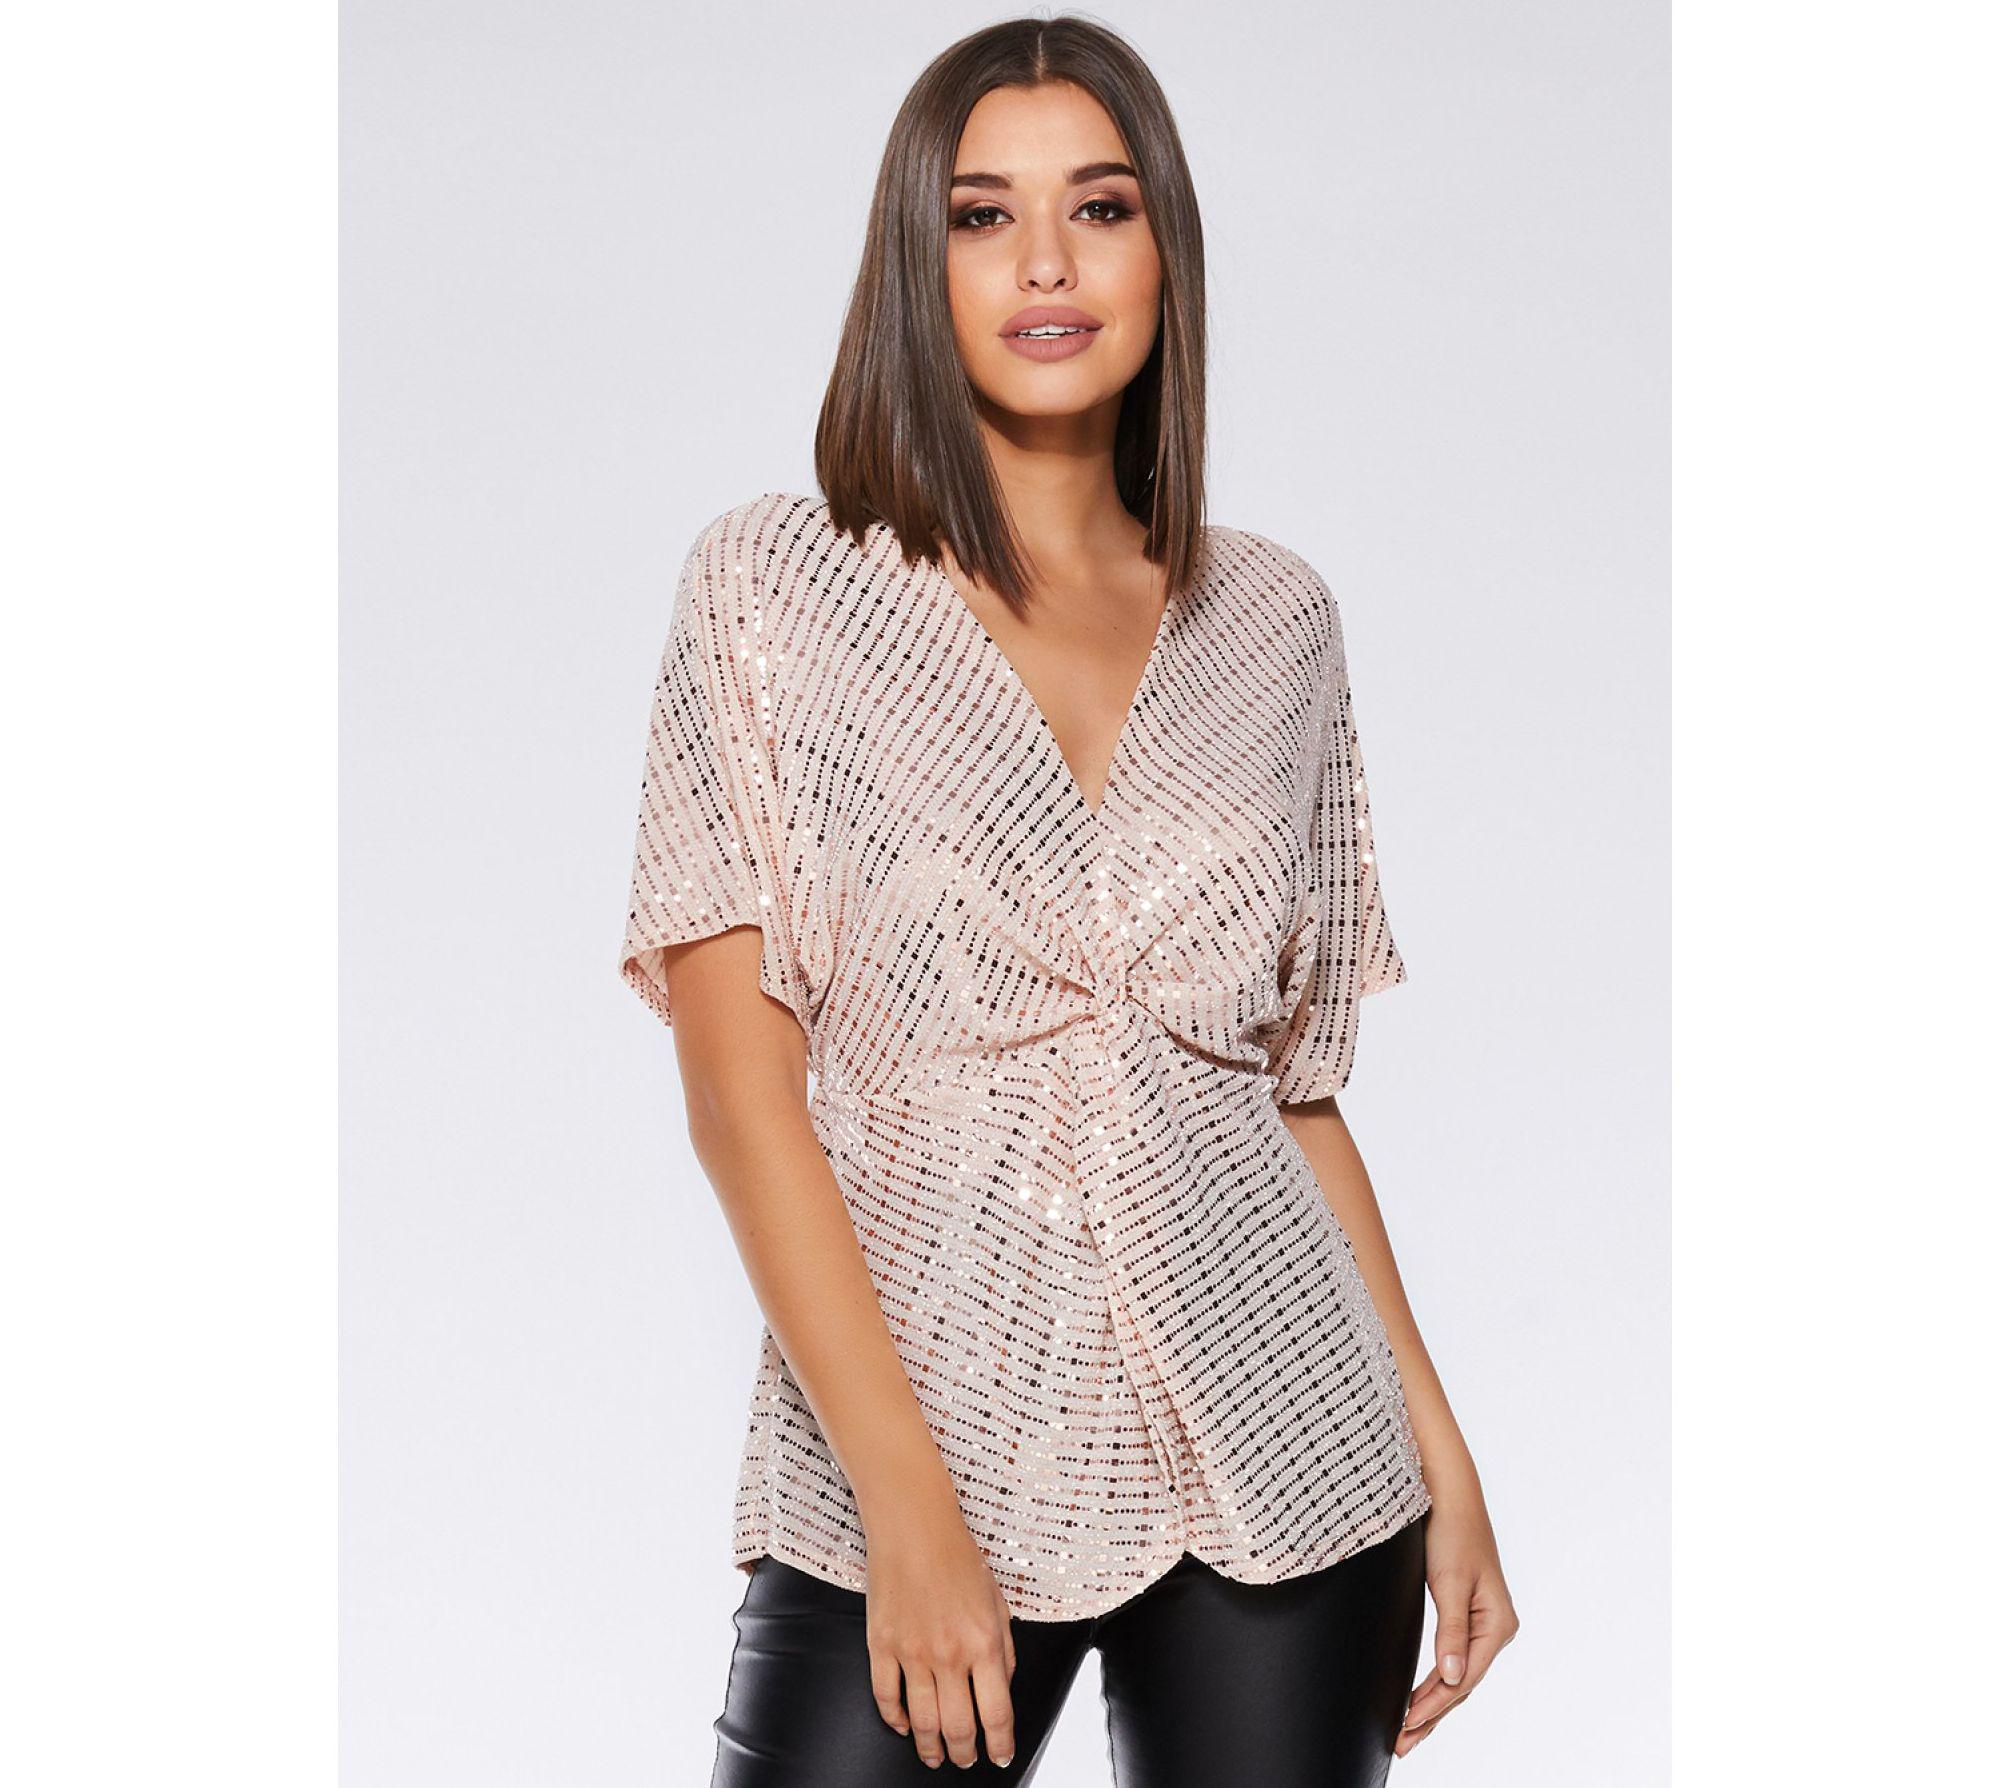 c054191a93a608 Quiz Nude And Silver Sequin Knot Front Batwing Top in Natural - Lyst